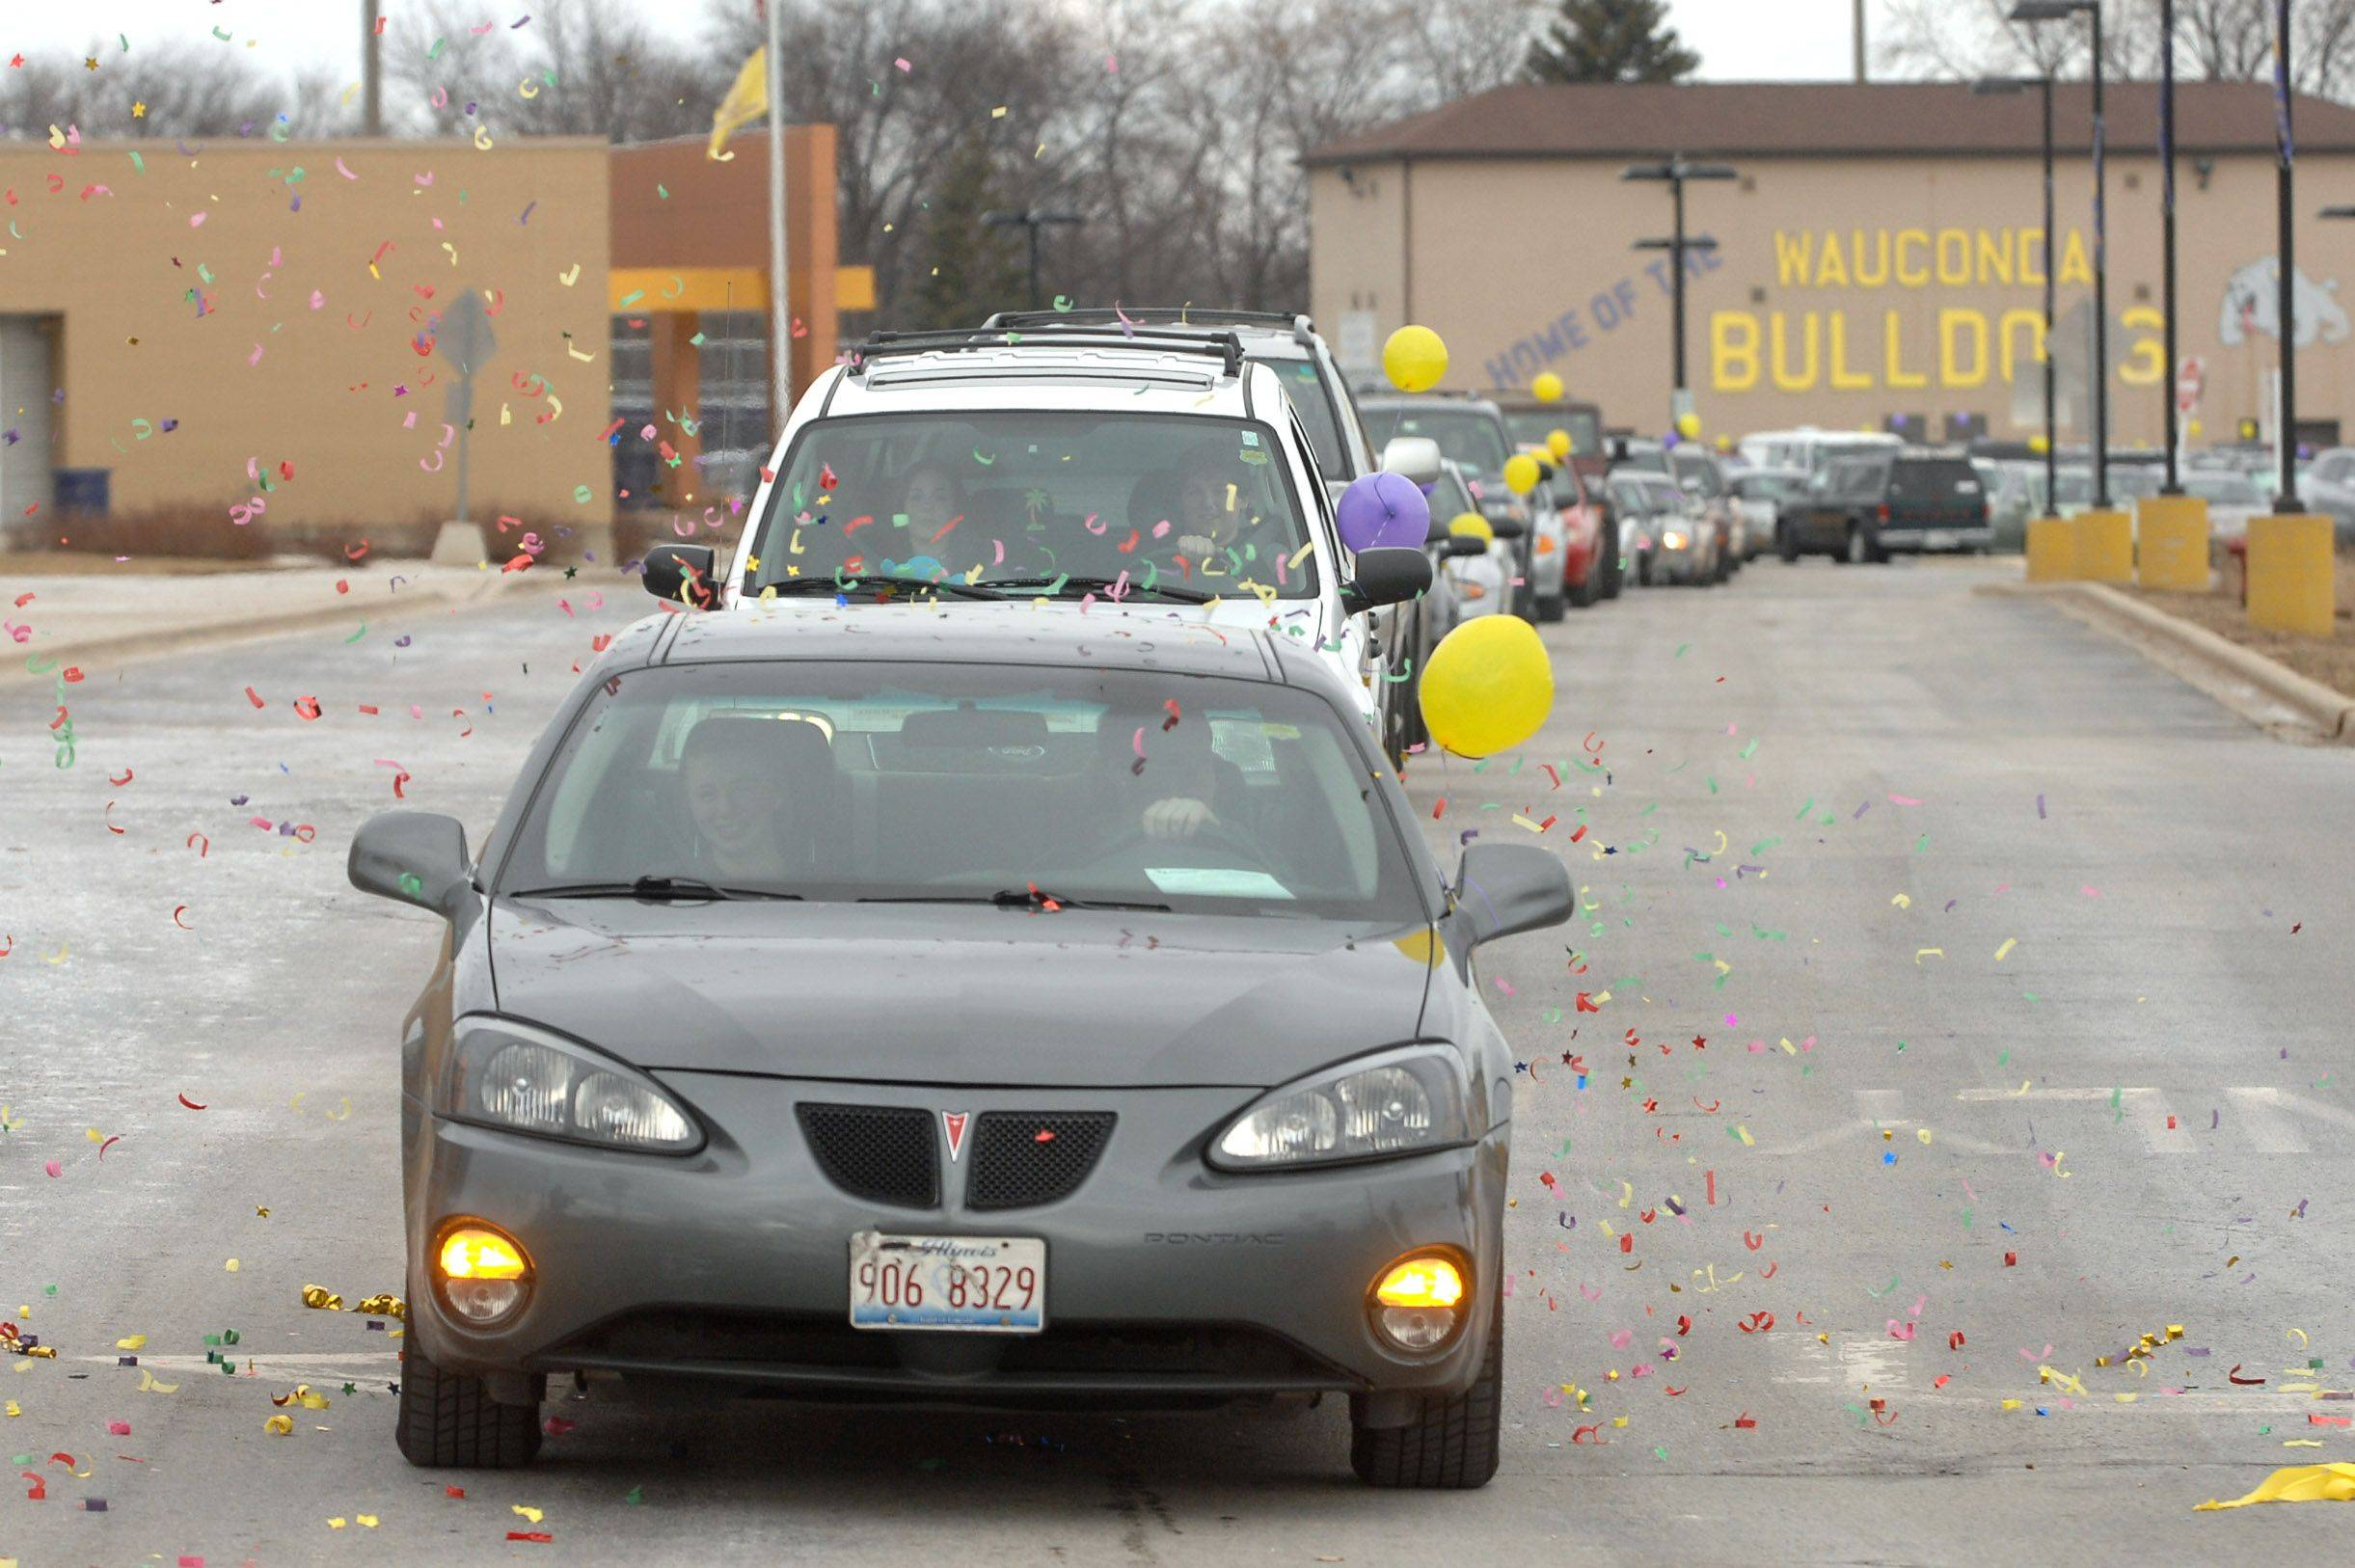 The vehicle procession carrying food to the Wauconda-Island Lake Food Pantry leaves Wauconda High School Friday morning. Students collected more than 2,100 items as part of their annual food drive.